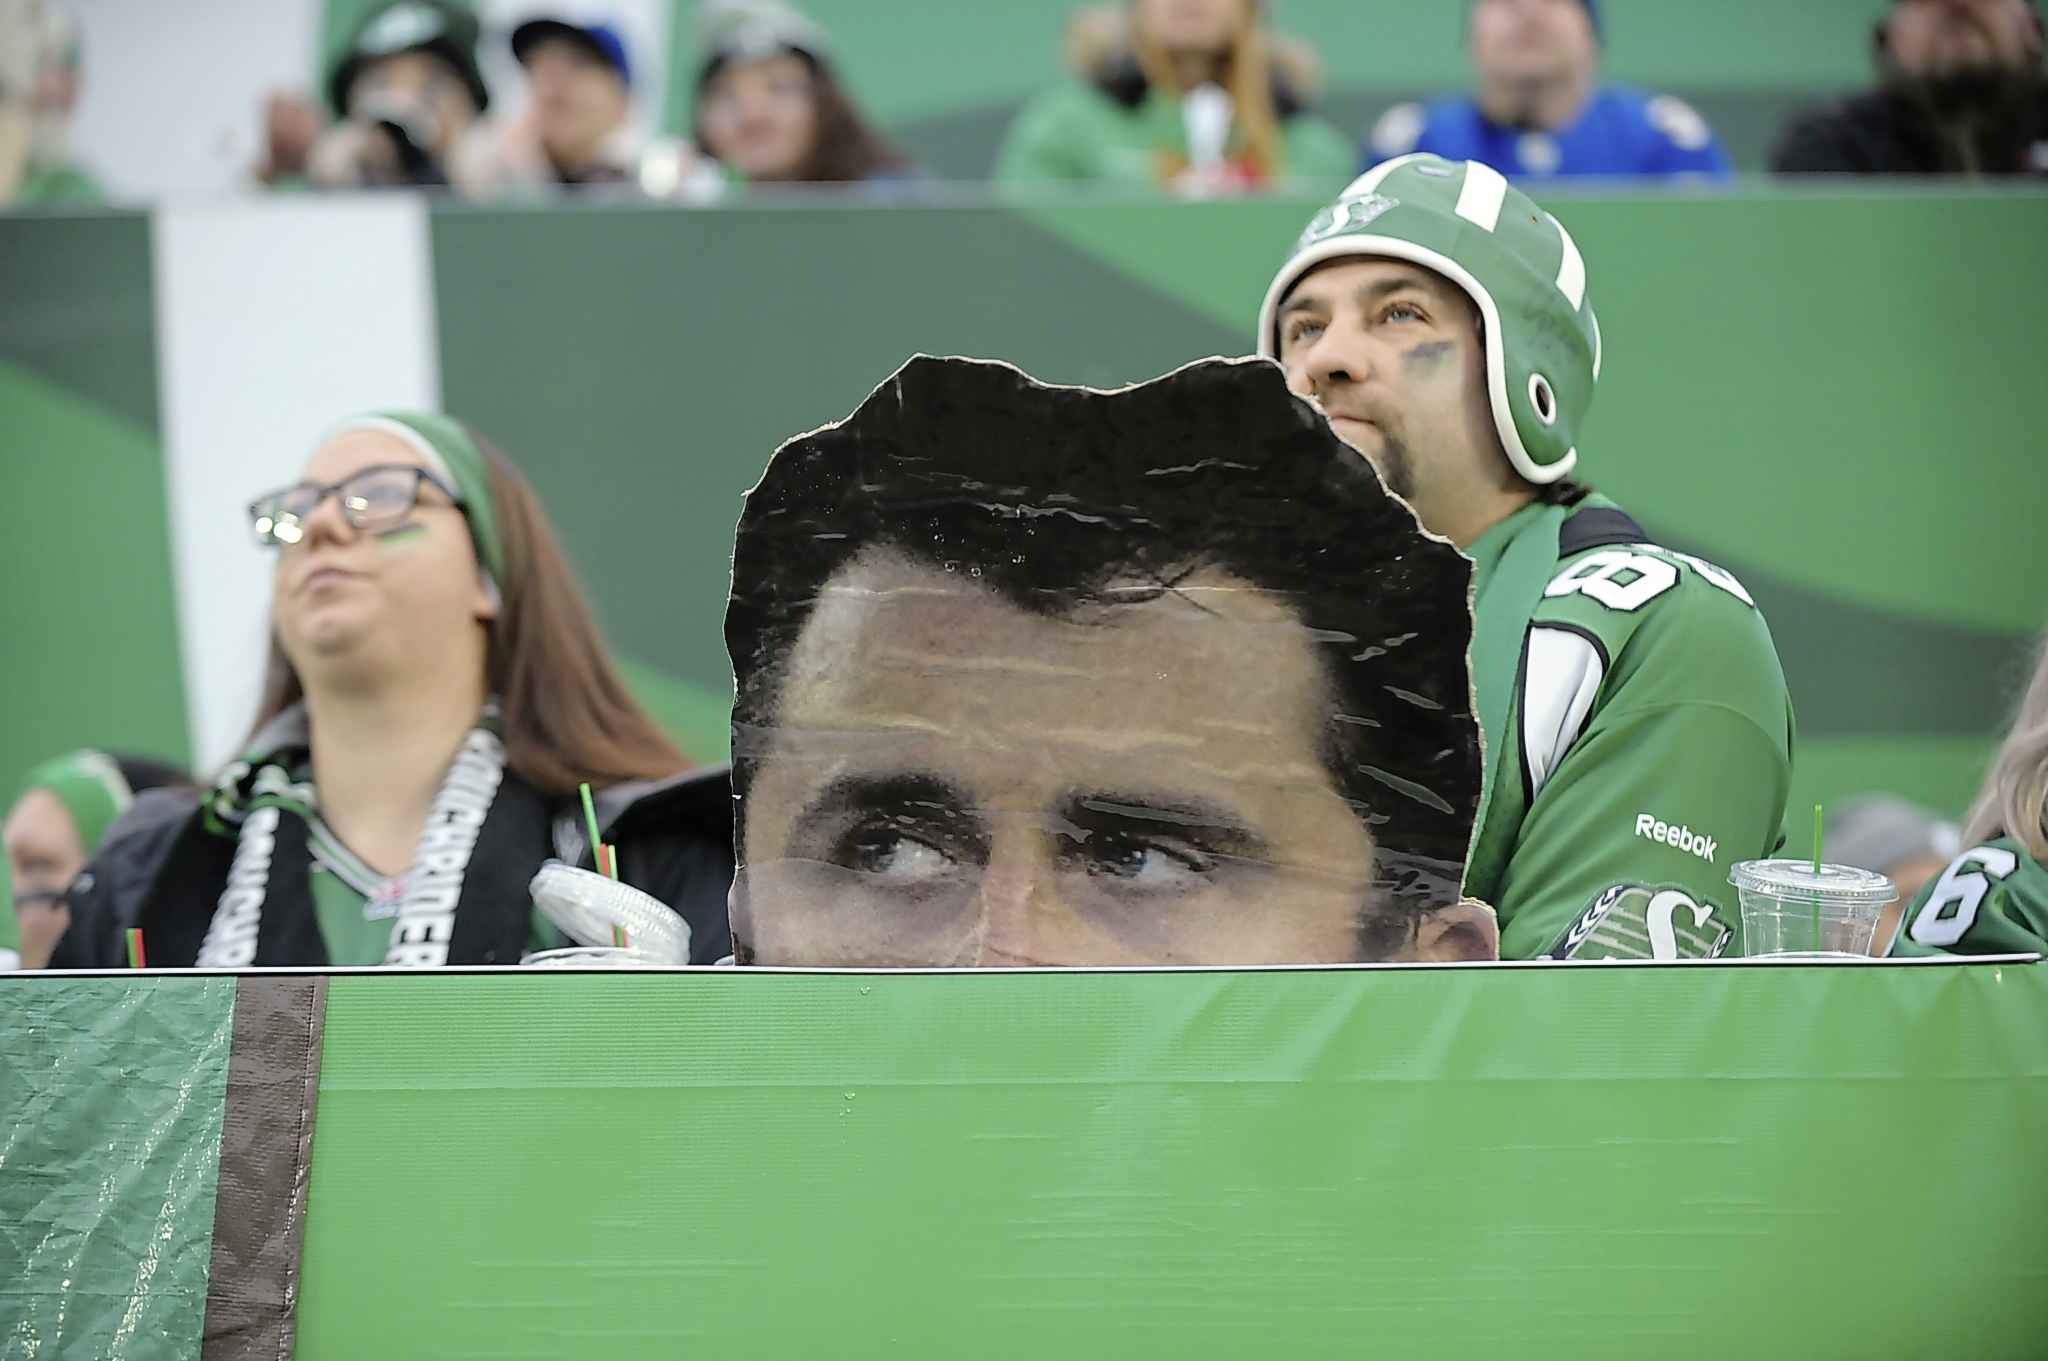 Saskatchewan Roughriders behind an image of Winnipeg Blue Bombers quarterback Zach Collaros during the West Division final at Mosaic Stadium in Regina on Sunday. The Roughriders began the season with Collaros as their starting quarterback, then traded him to the Toronto Argonauts after he went down with an injury.